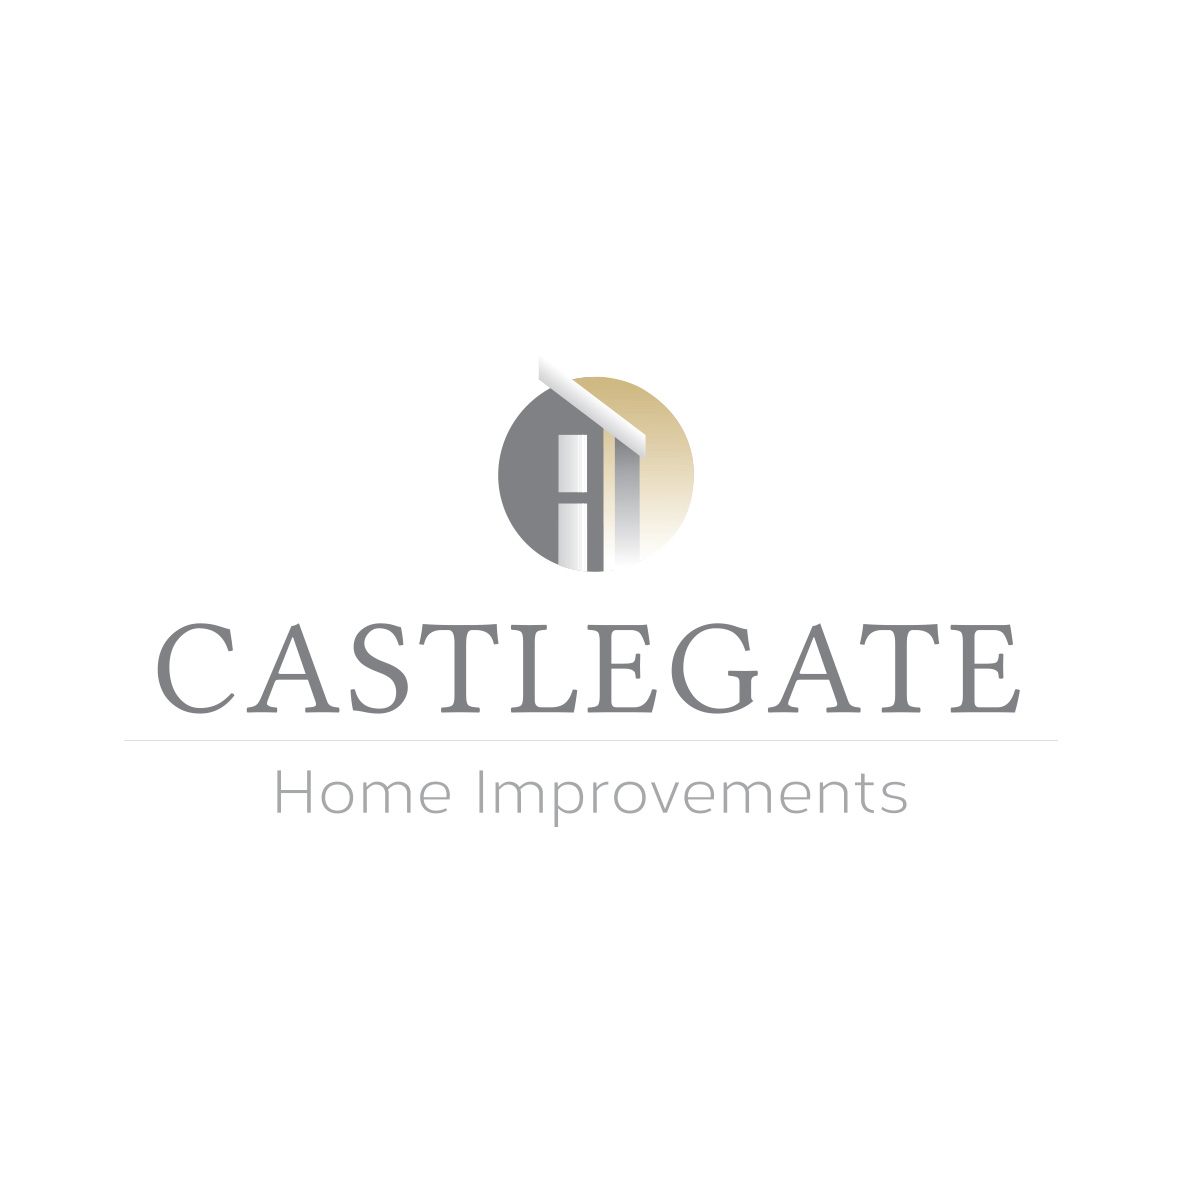 Castlegate Home Improvements   Business Logo Design